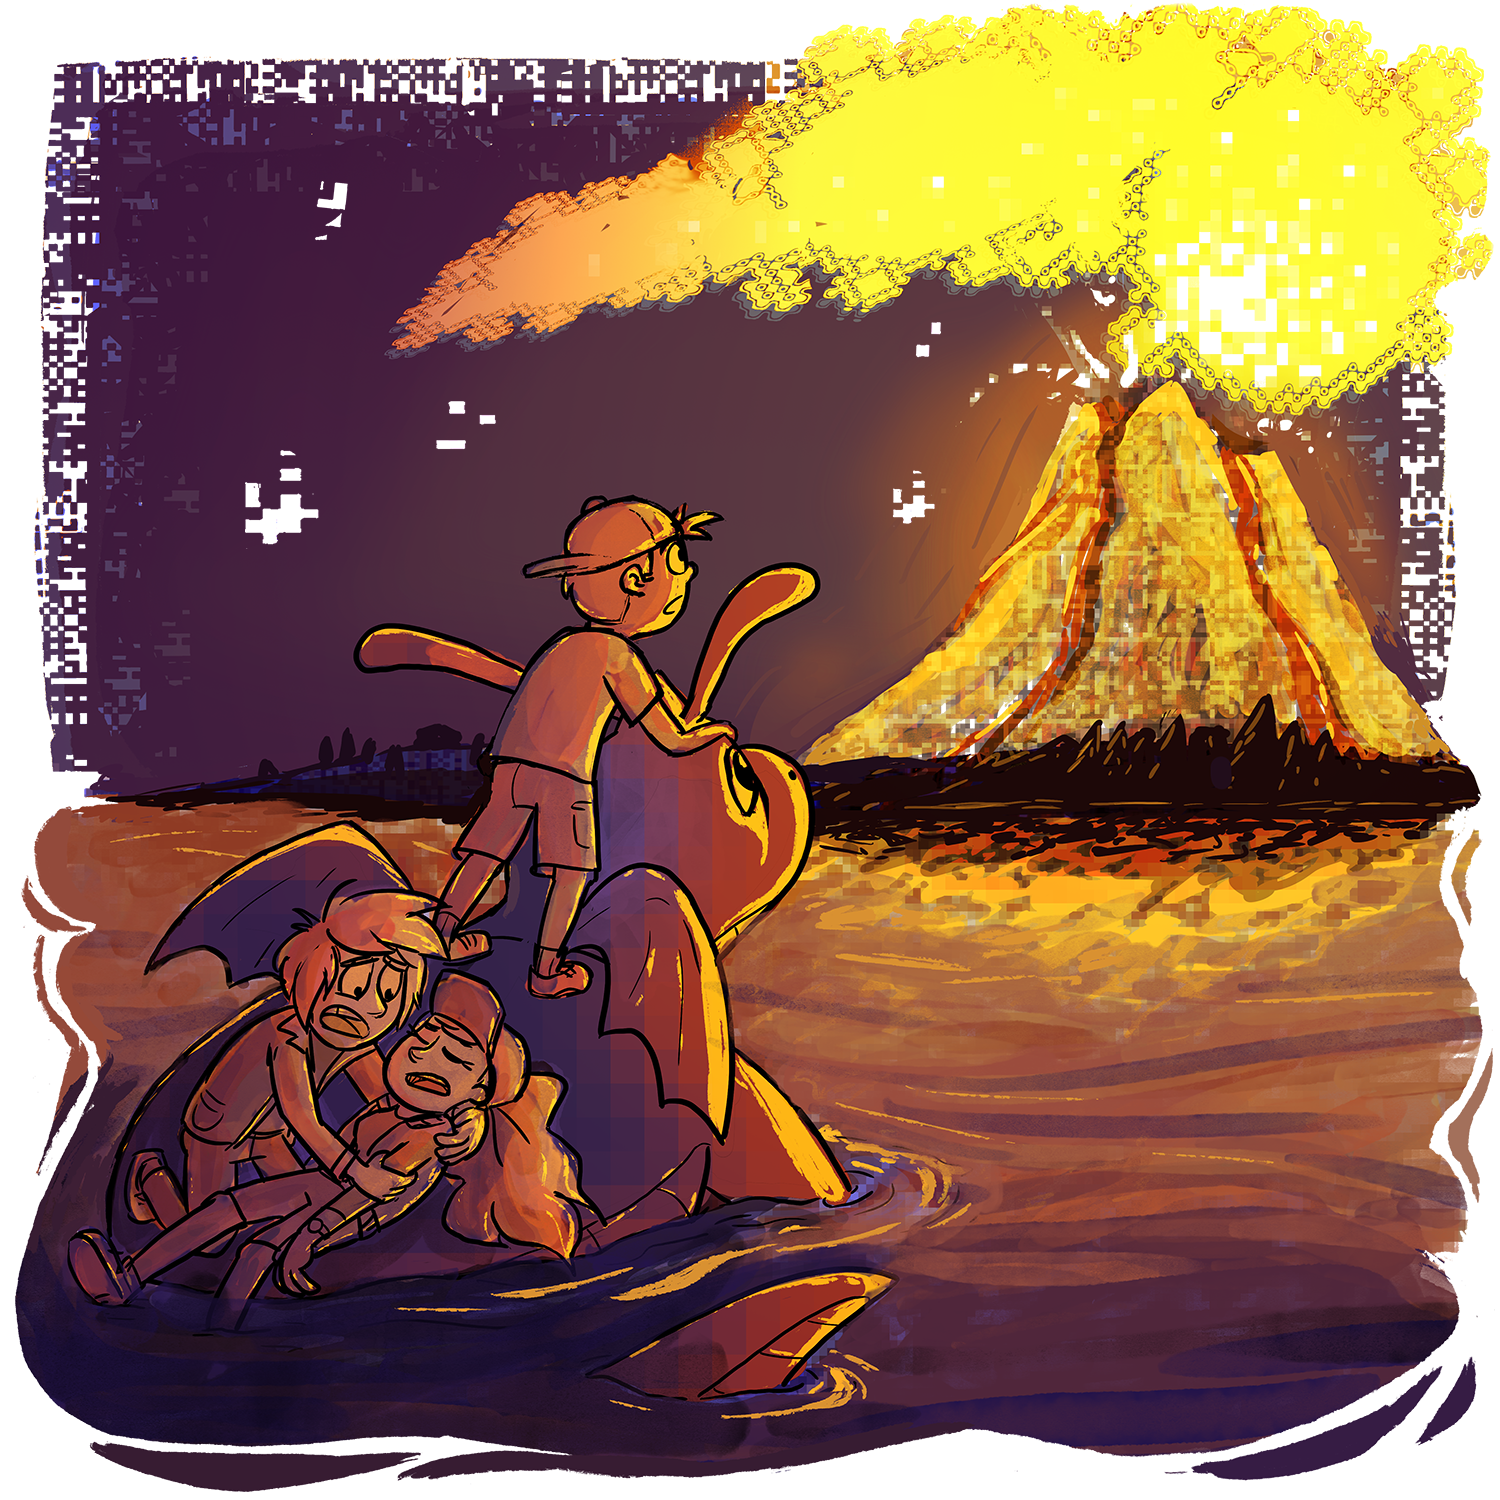 The Volcano at Cinnabar Island is erupting with a huge fiery plume of smoke. There are little glitches and artifacts around the frame, with Skip and Dragonite looking towards the Volcano in awe, and Xander trying to wake up a passed out Candace.